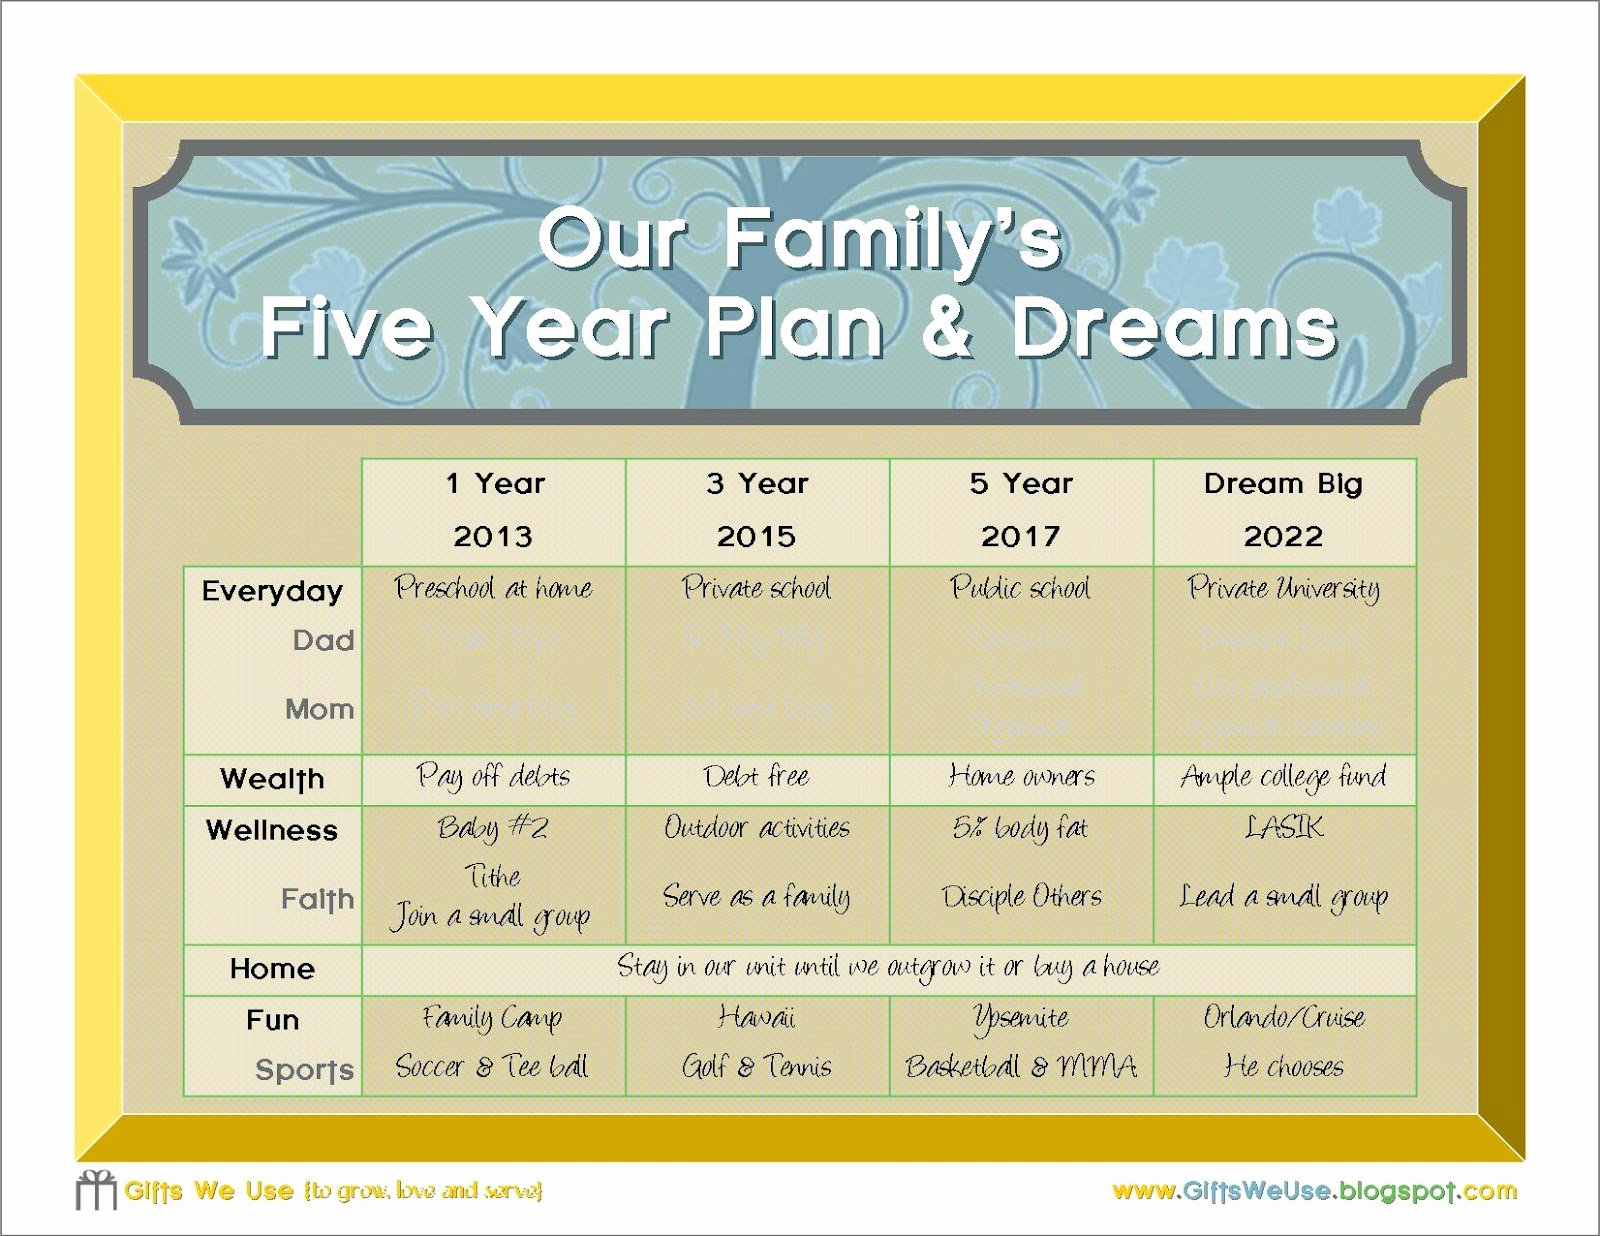 Five Year Plan Template Unique Gifts We Use Family 5 Year Plan & A Printable